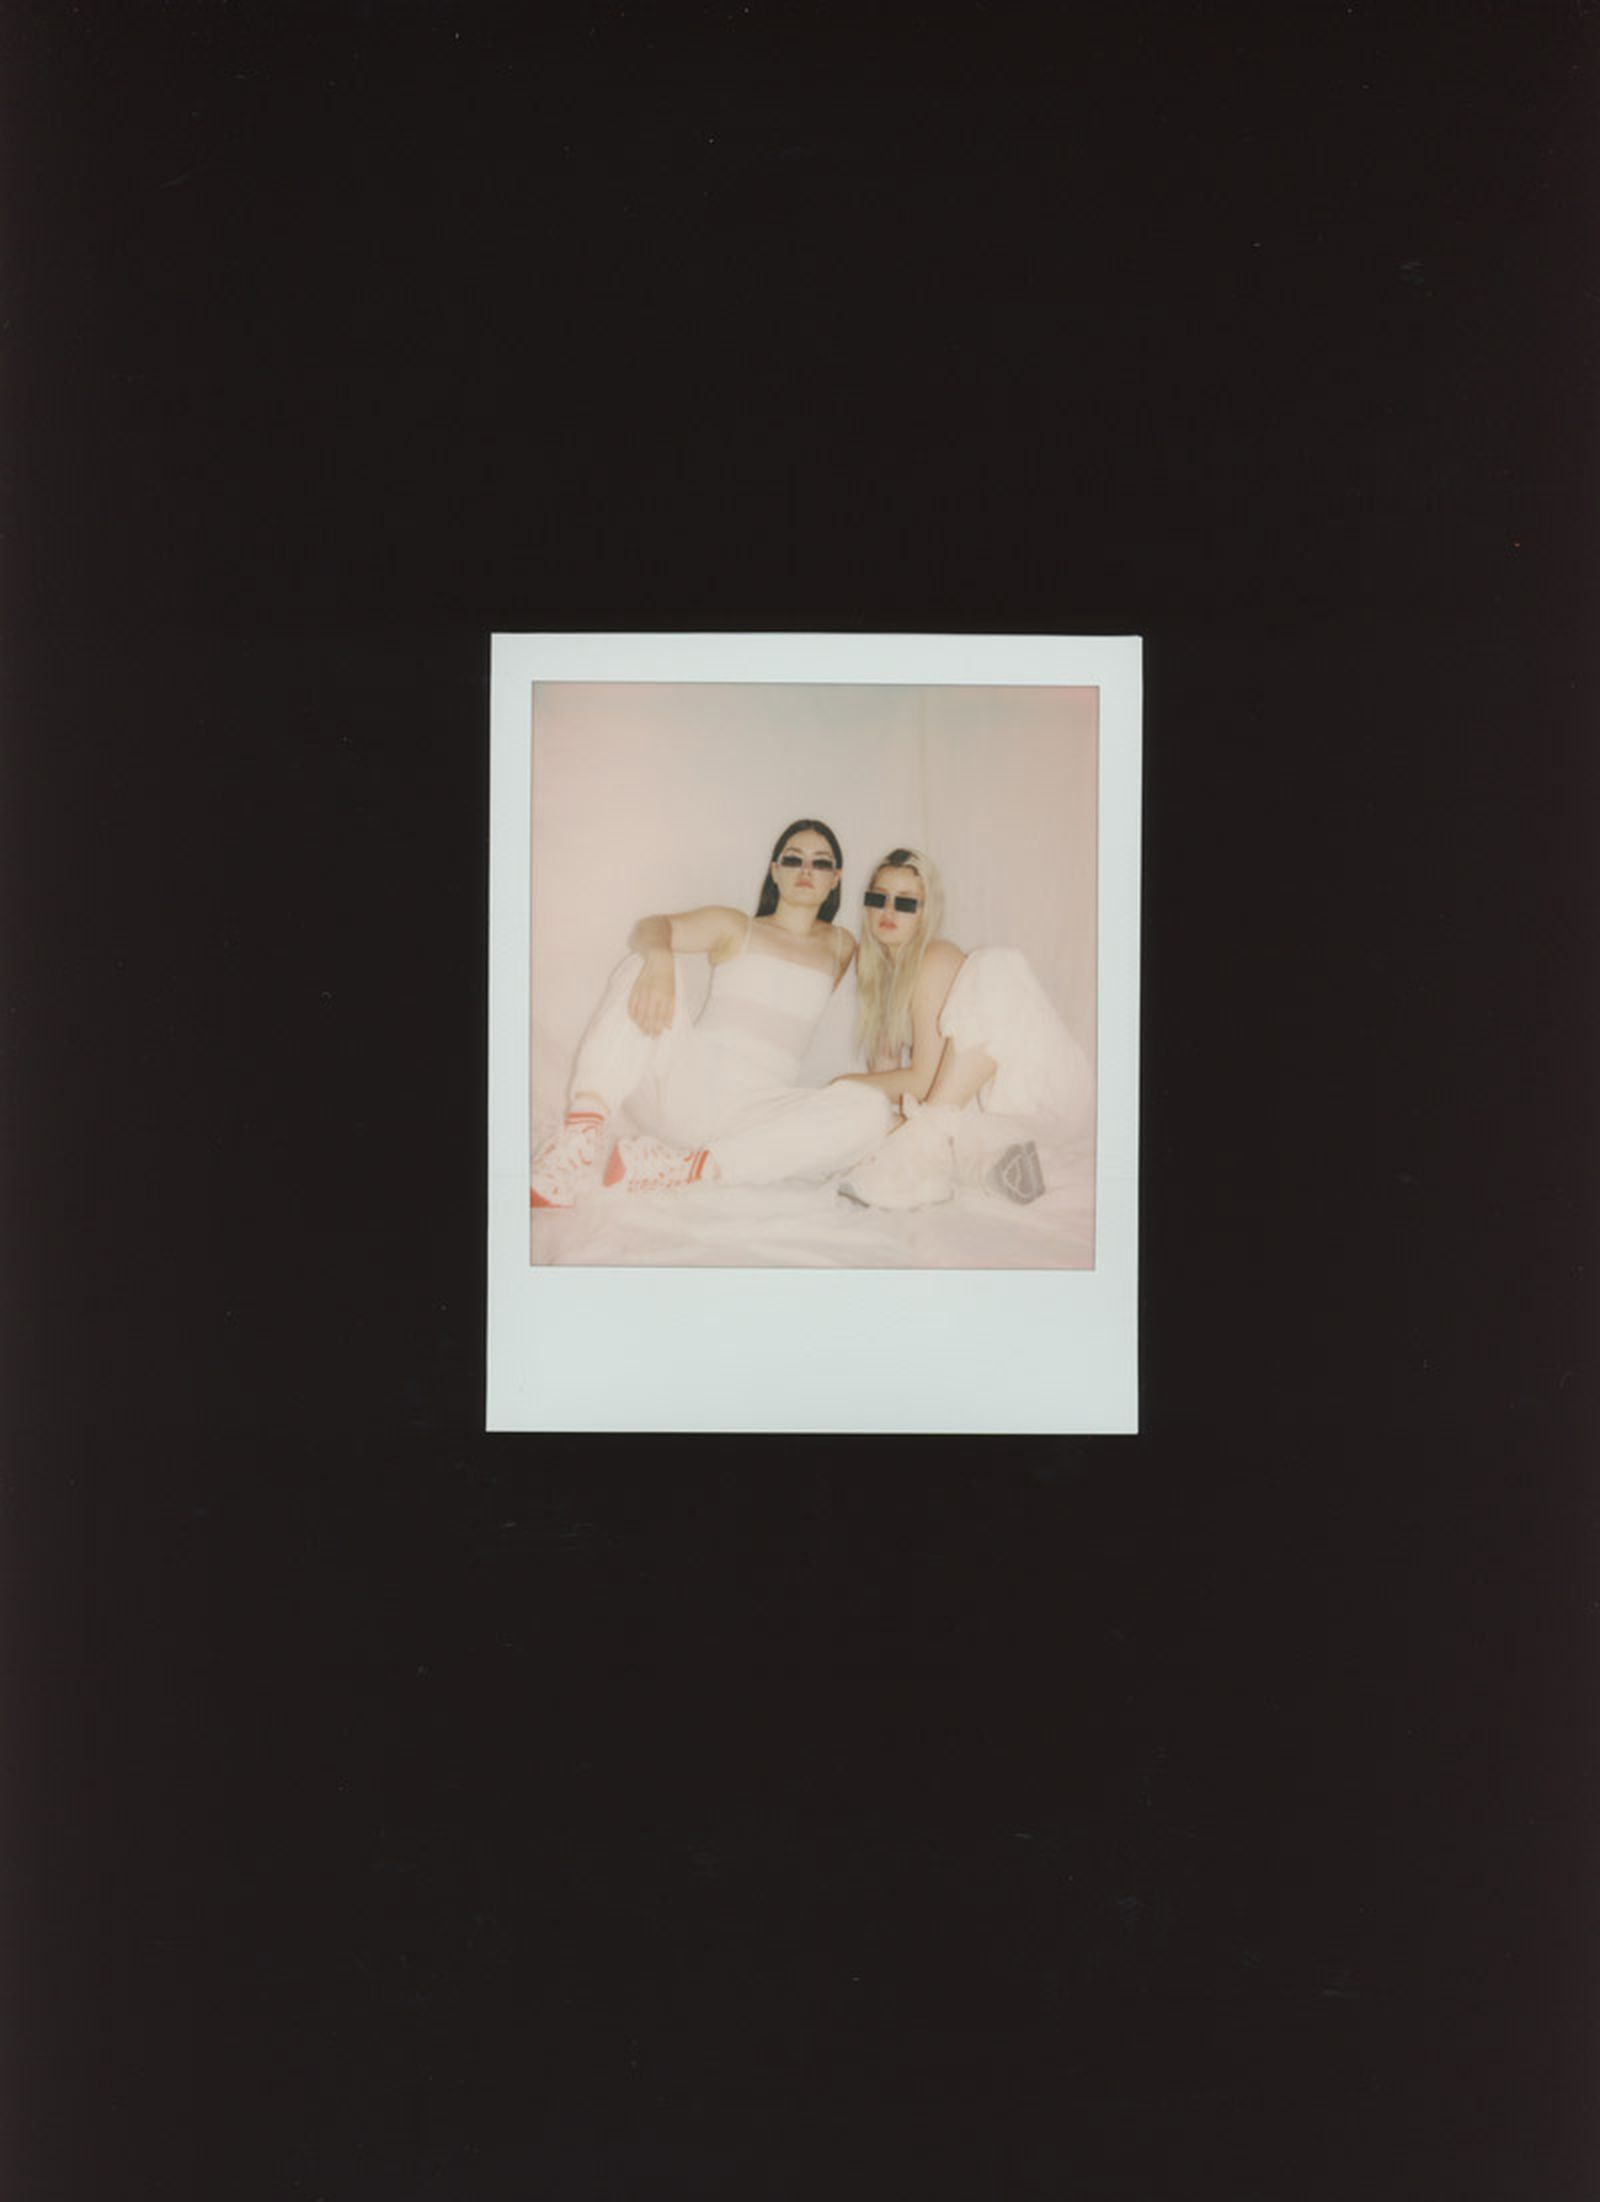 CHLOE AND CHENELL polaroid photograph